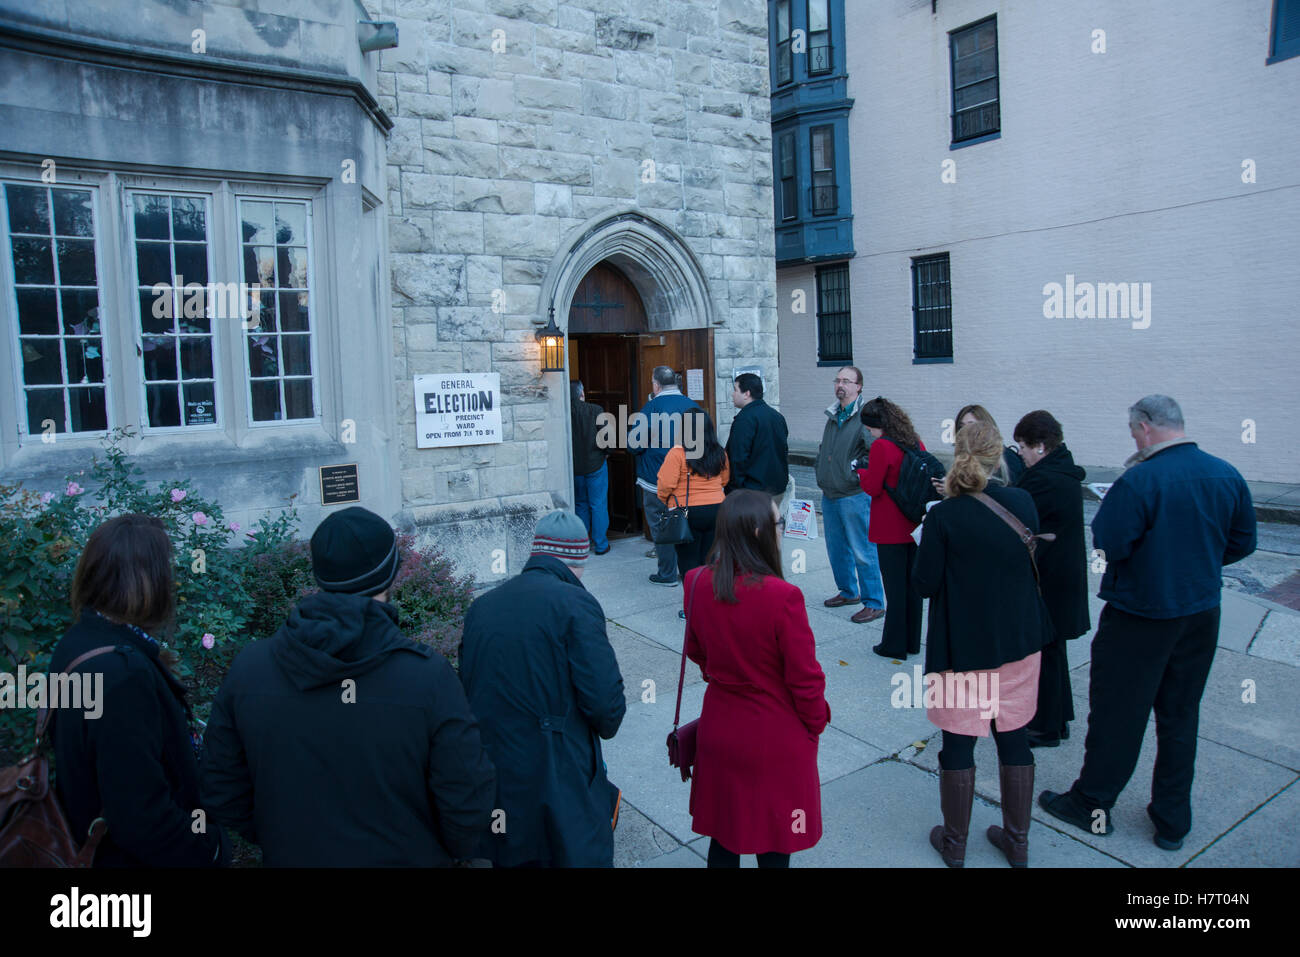 Baltimore, USA. 8th Nov, 2016. Baltimore, USA. 08th Nov, 2016. Voters line up early to cast their ballots on Nov Stock Photo